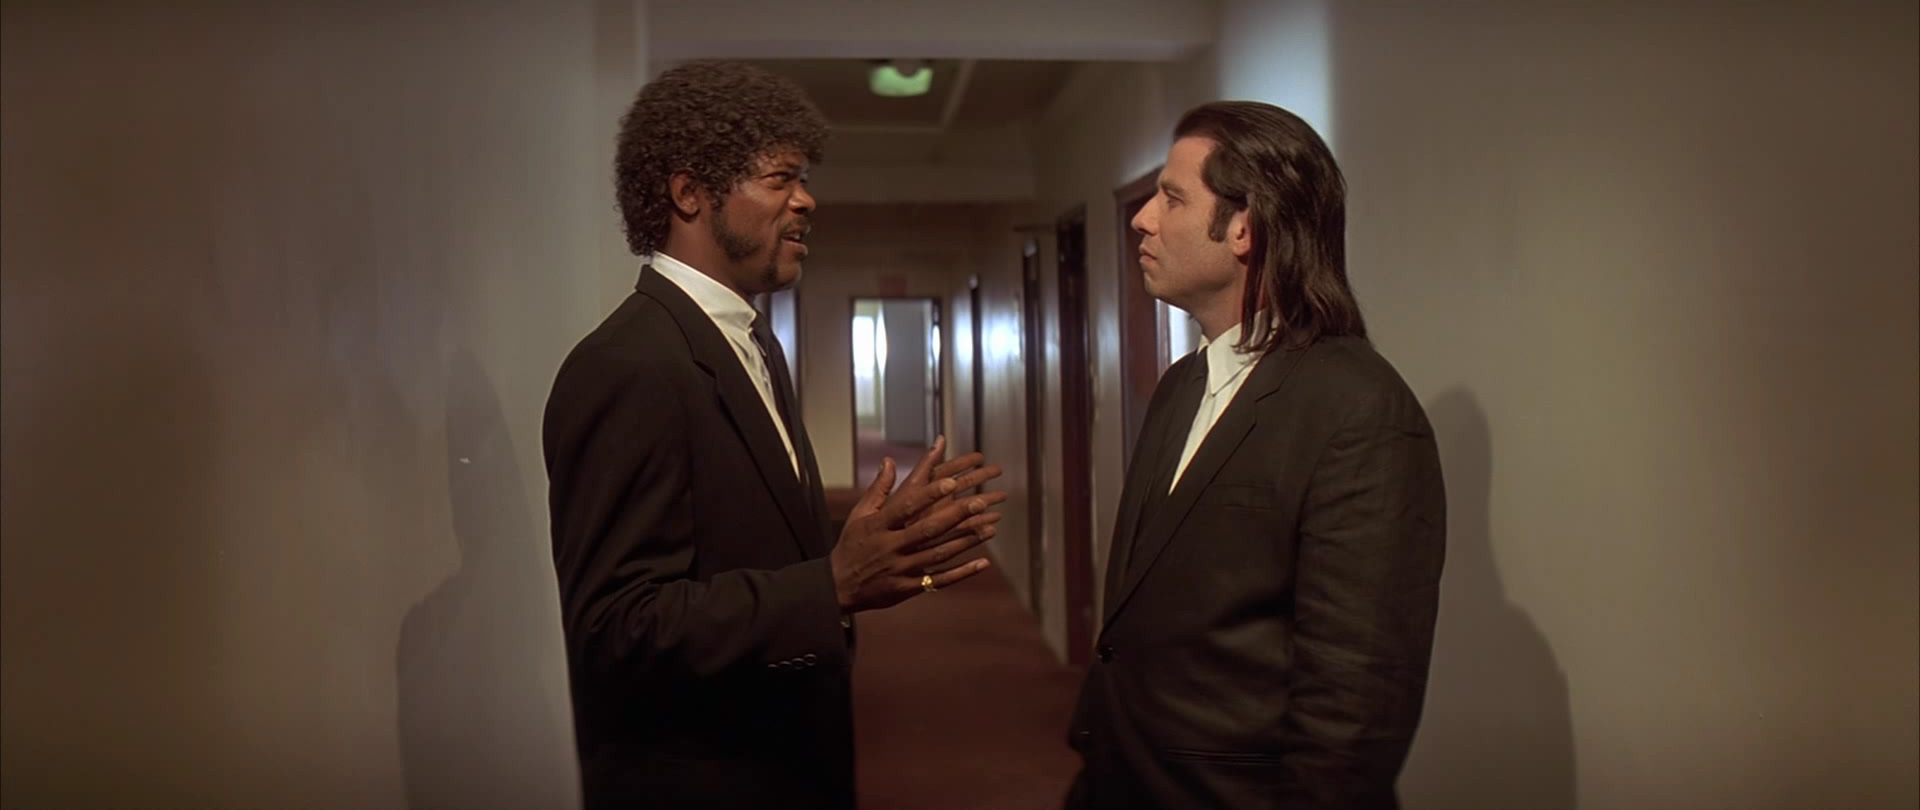 Pulp Fiction images Pulp Fiction HD wallpaper and background photos ...